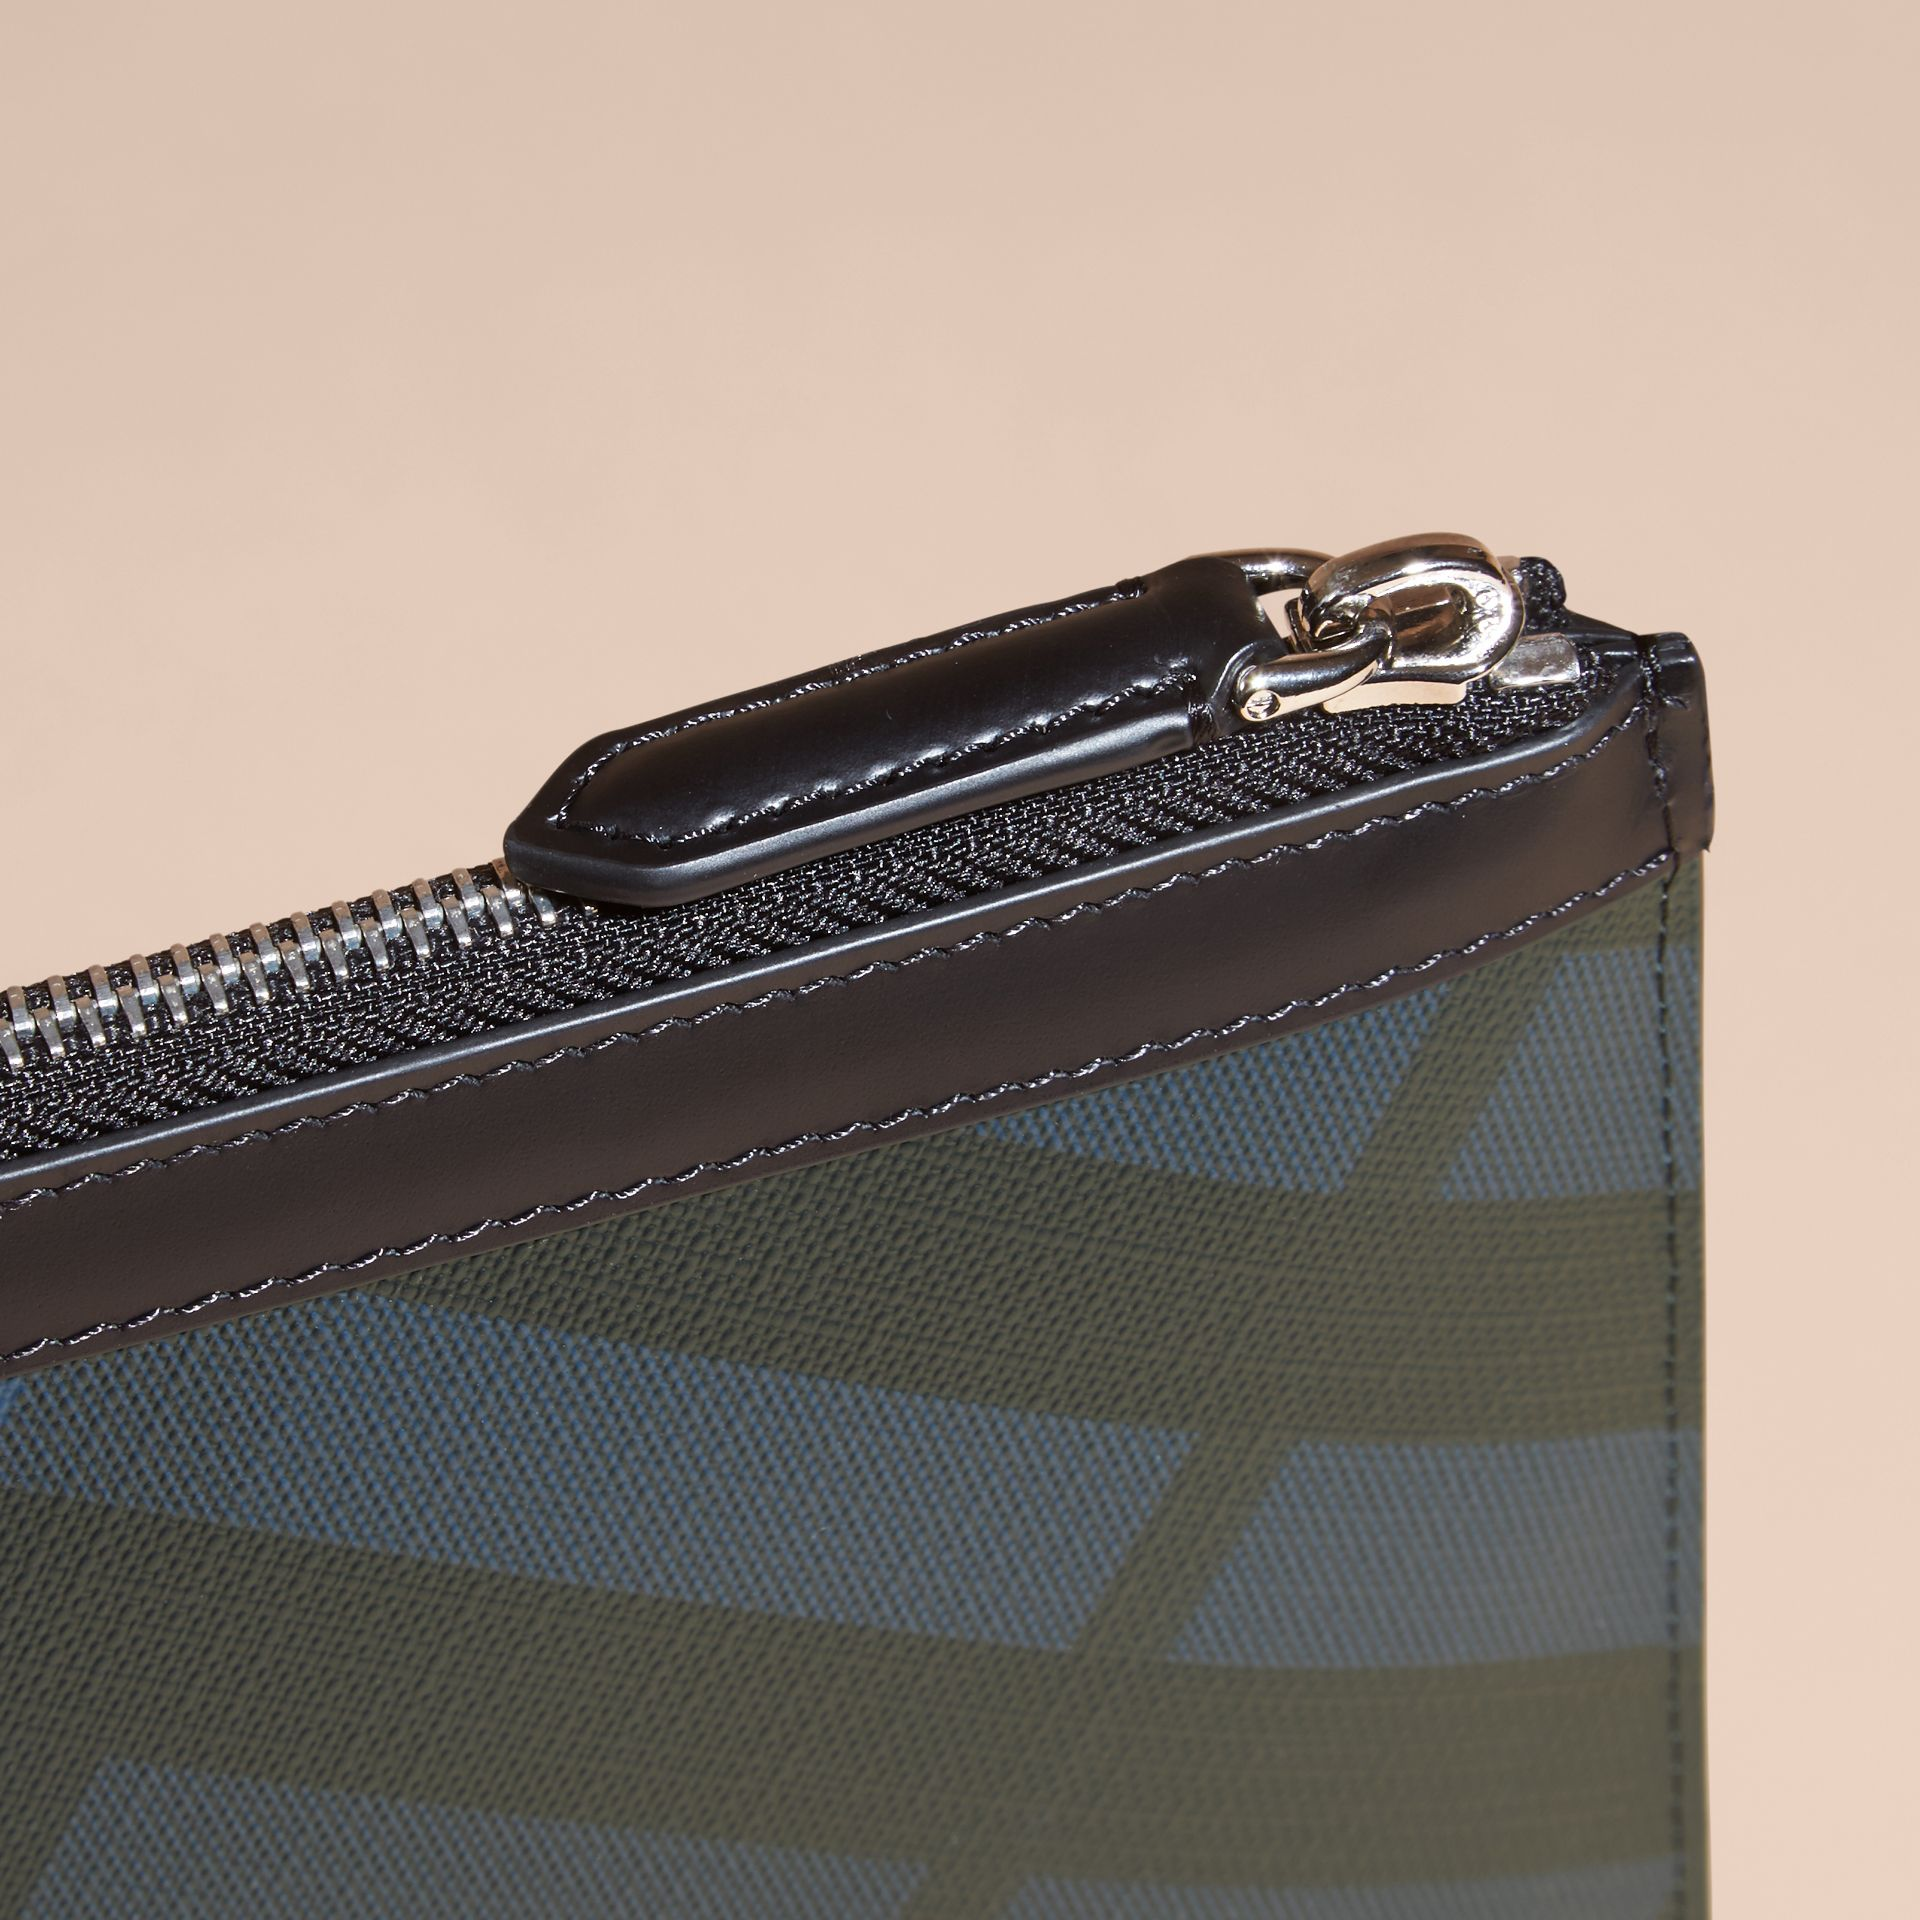 Zipped London Check Pouch in Navy/black - Men | Burberry Australia - gallery image 5